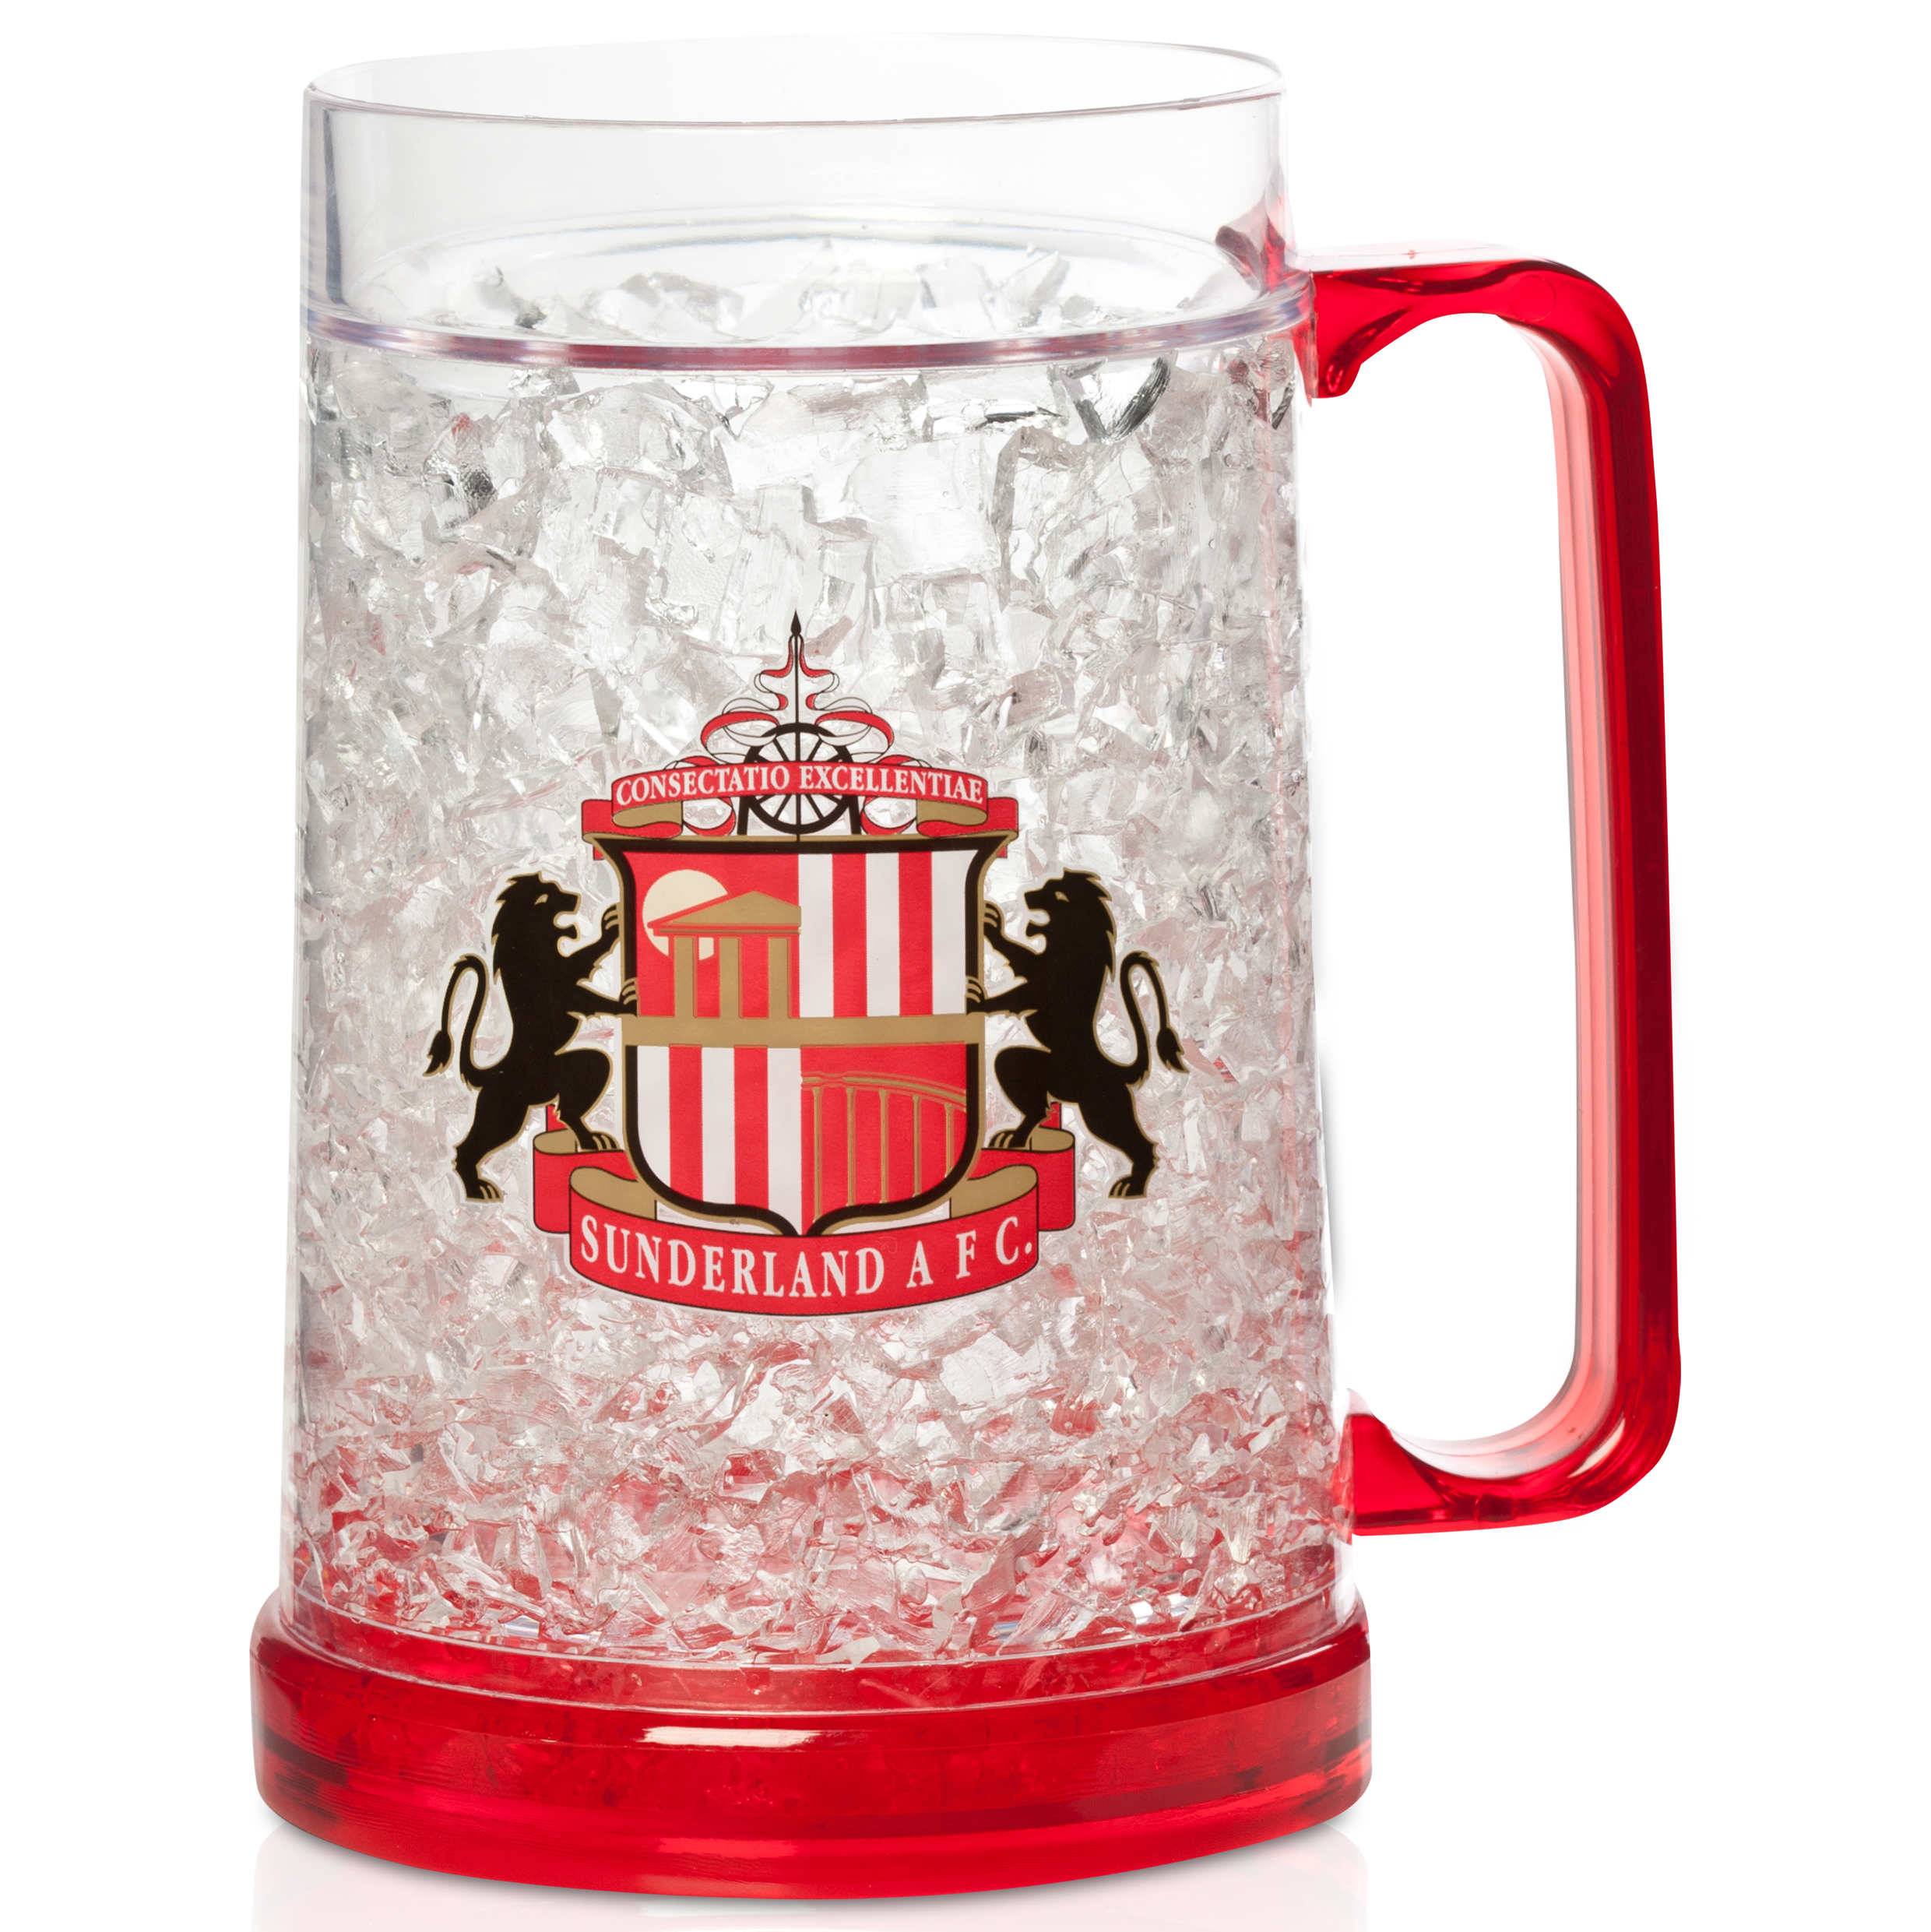 Sunderland Freezer Glass